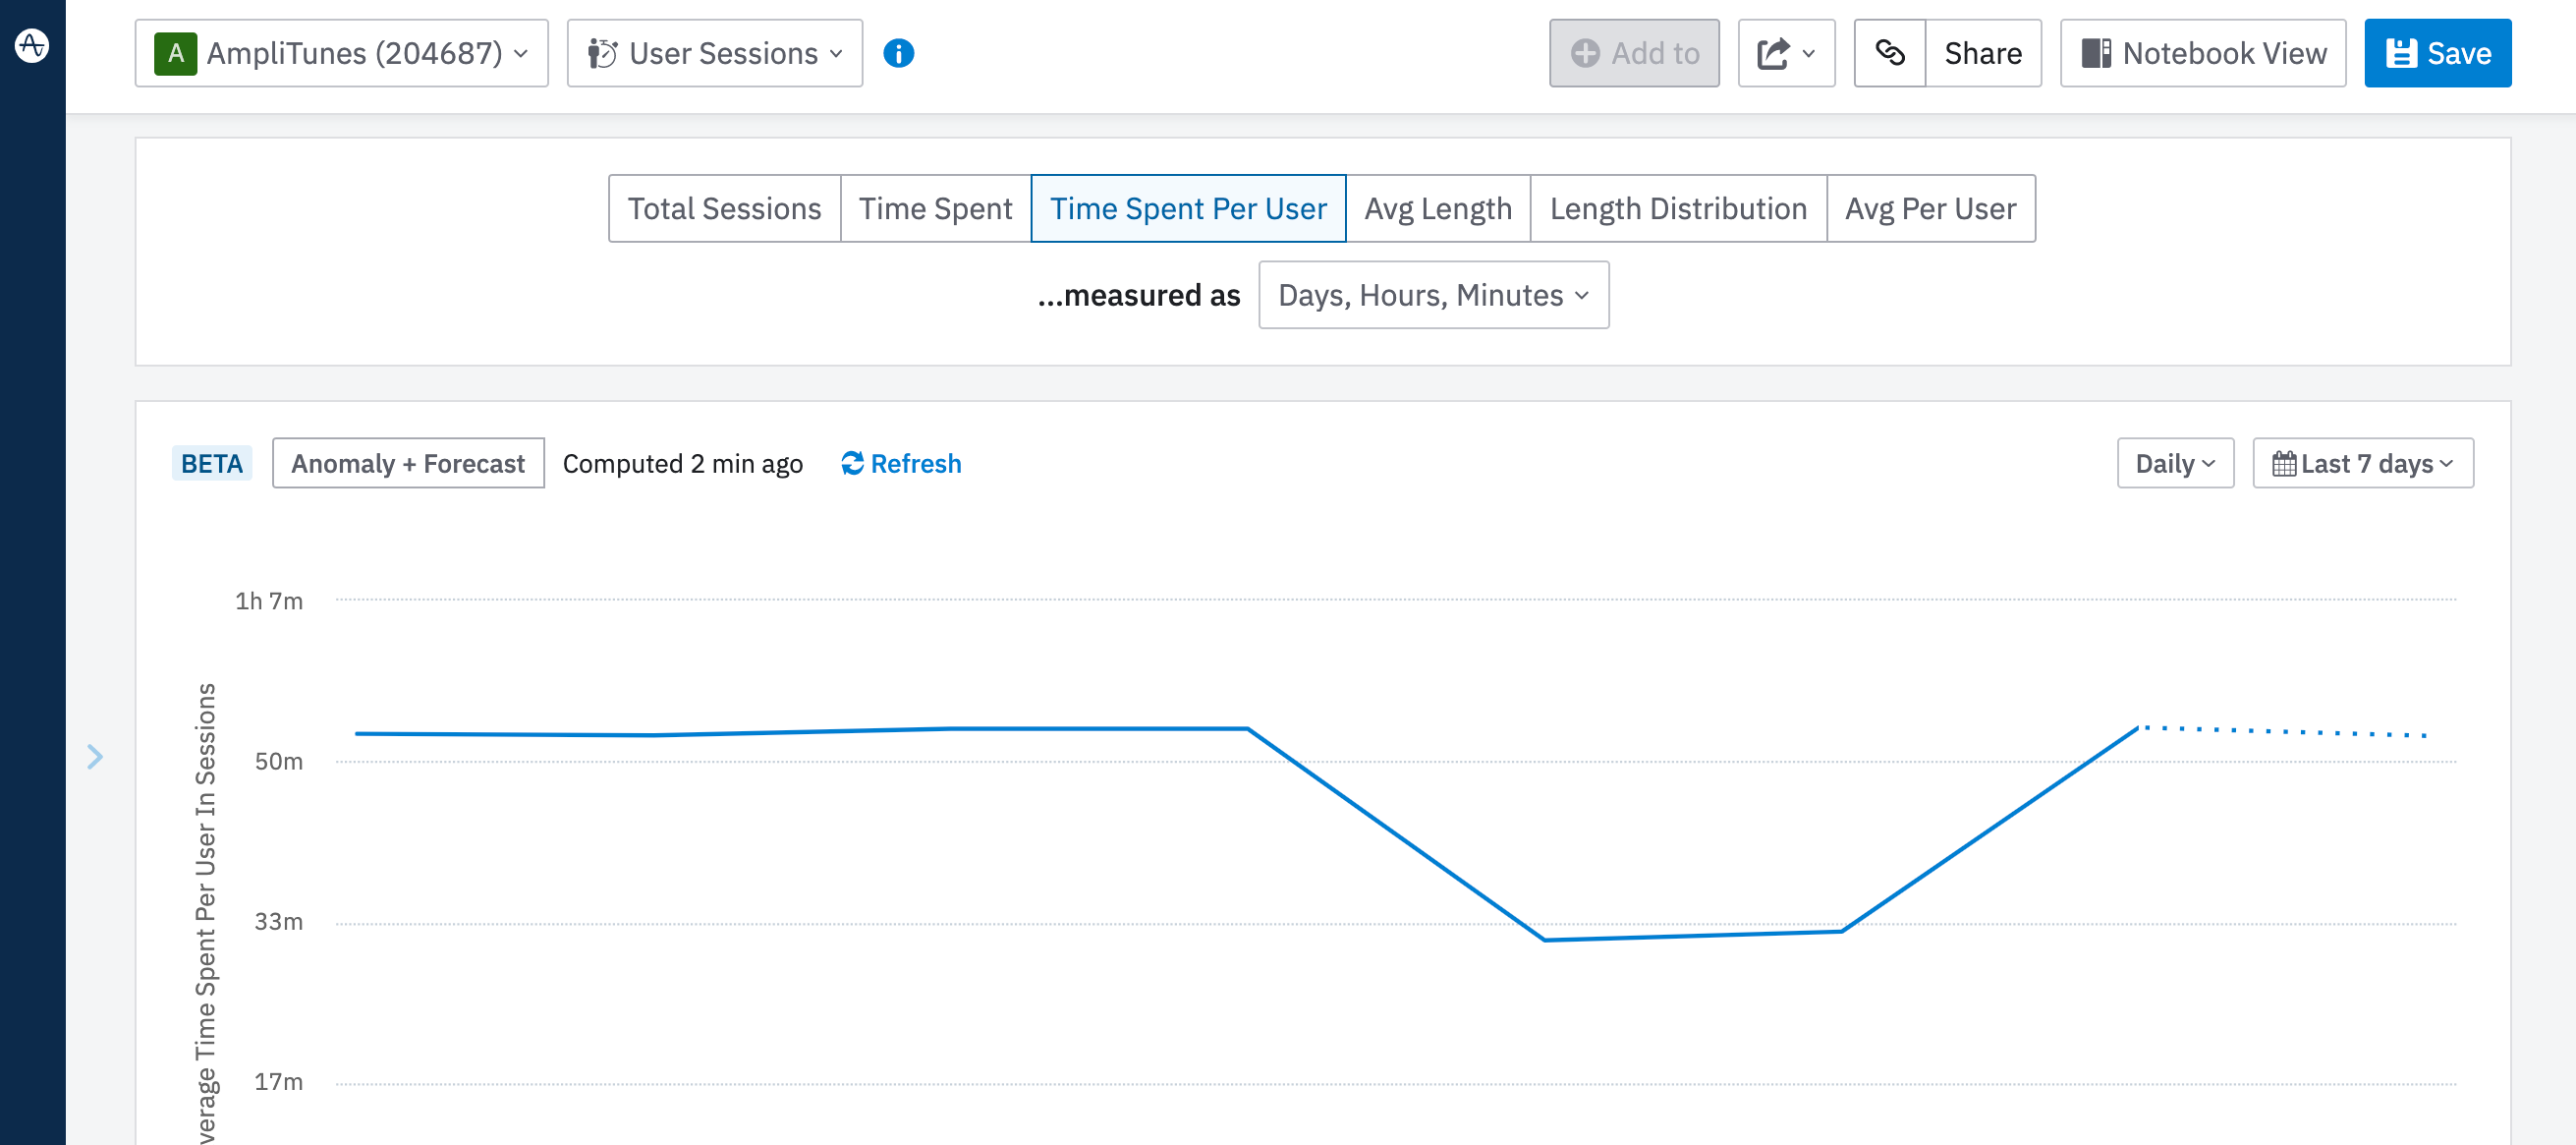 Measure Time Spent and Event-Based Engagement in User Sessions